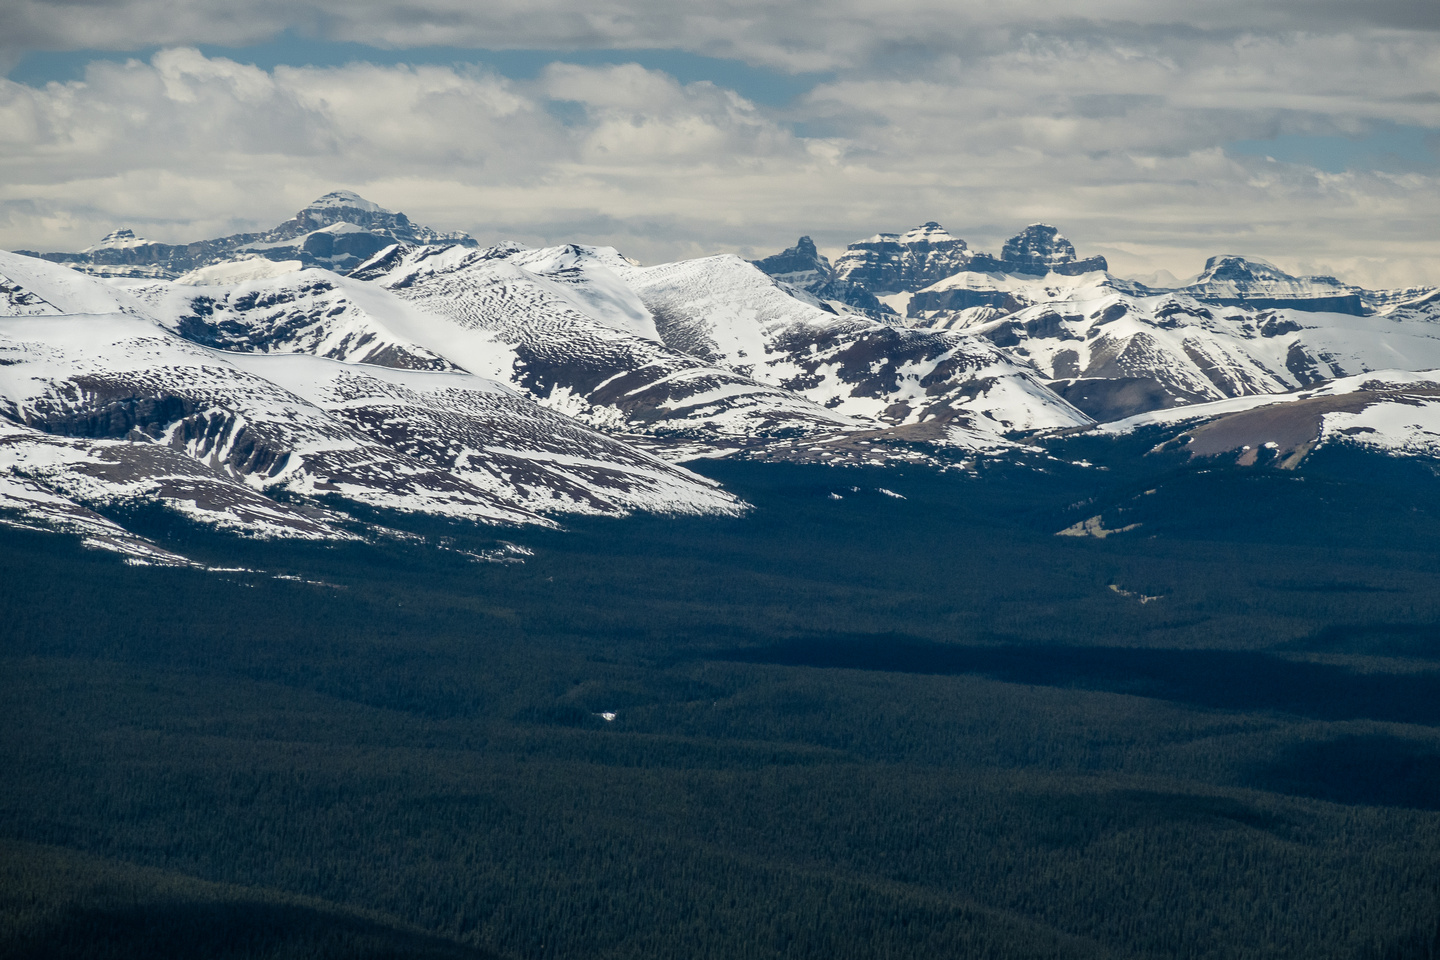 Cline, Resolute and the Whitegoat Peaks (R).